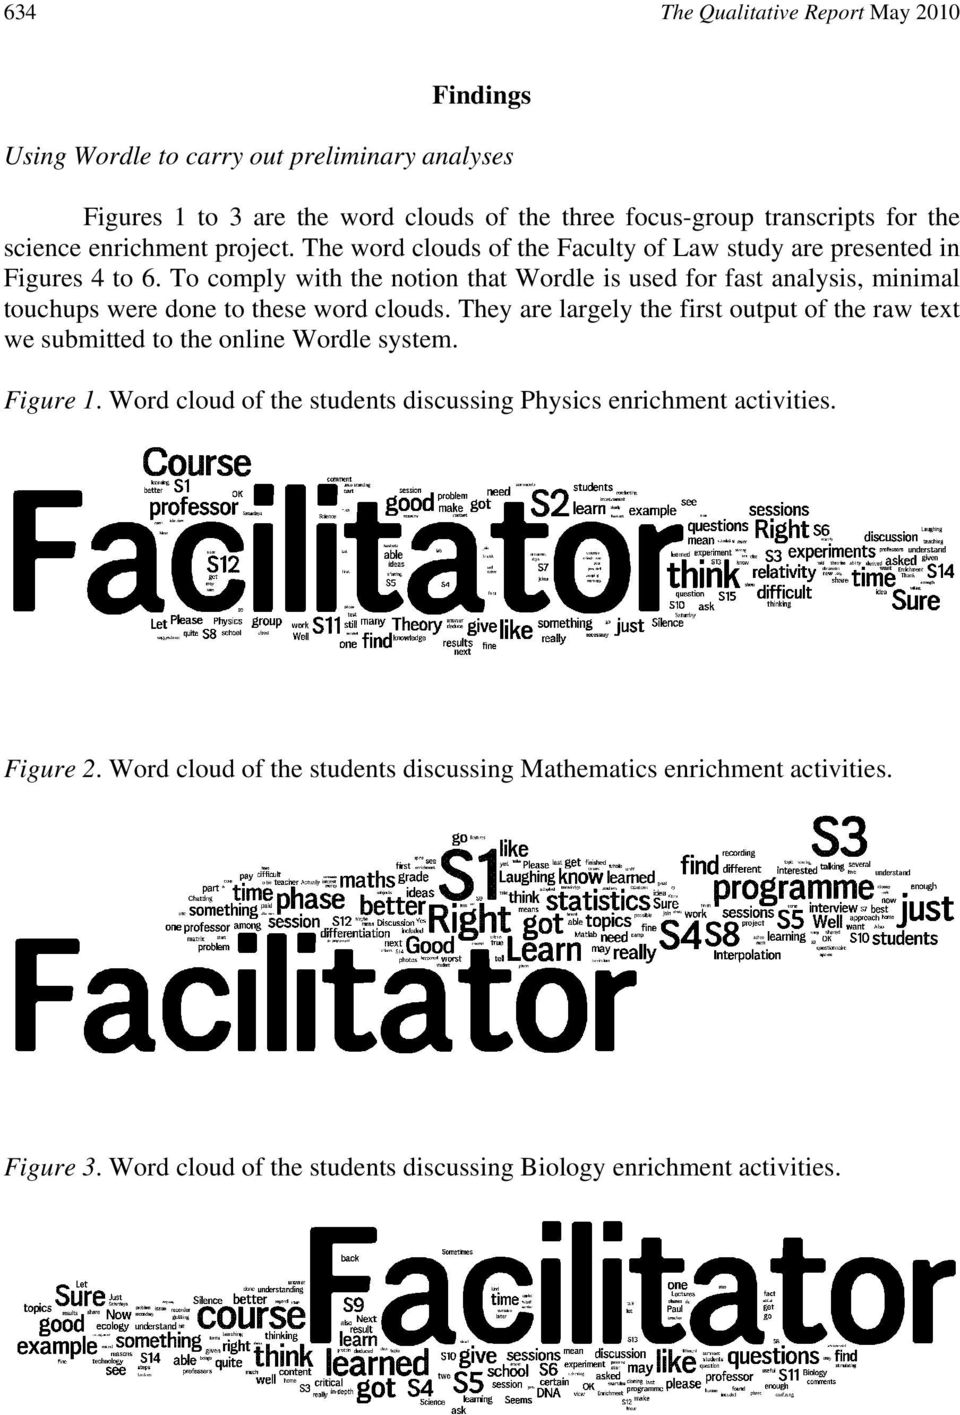 To comply with the notion that Wordle is used for fast analysis, minimal touchups were done to these word clouds.